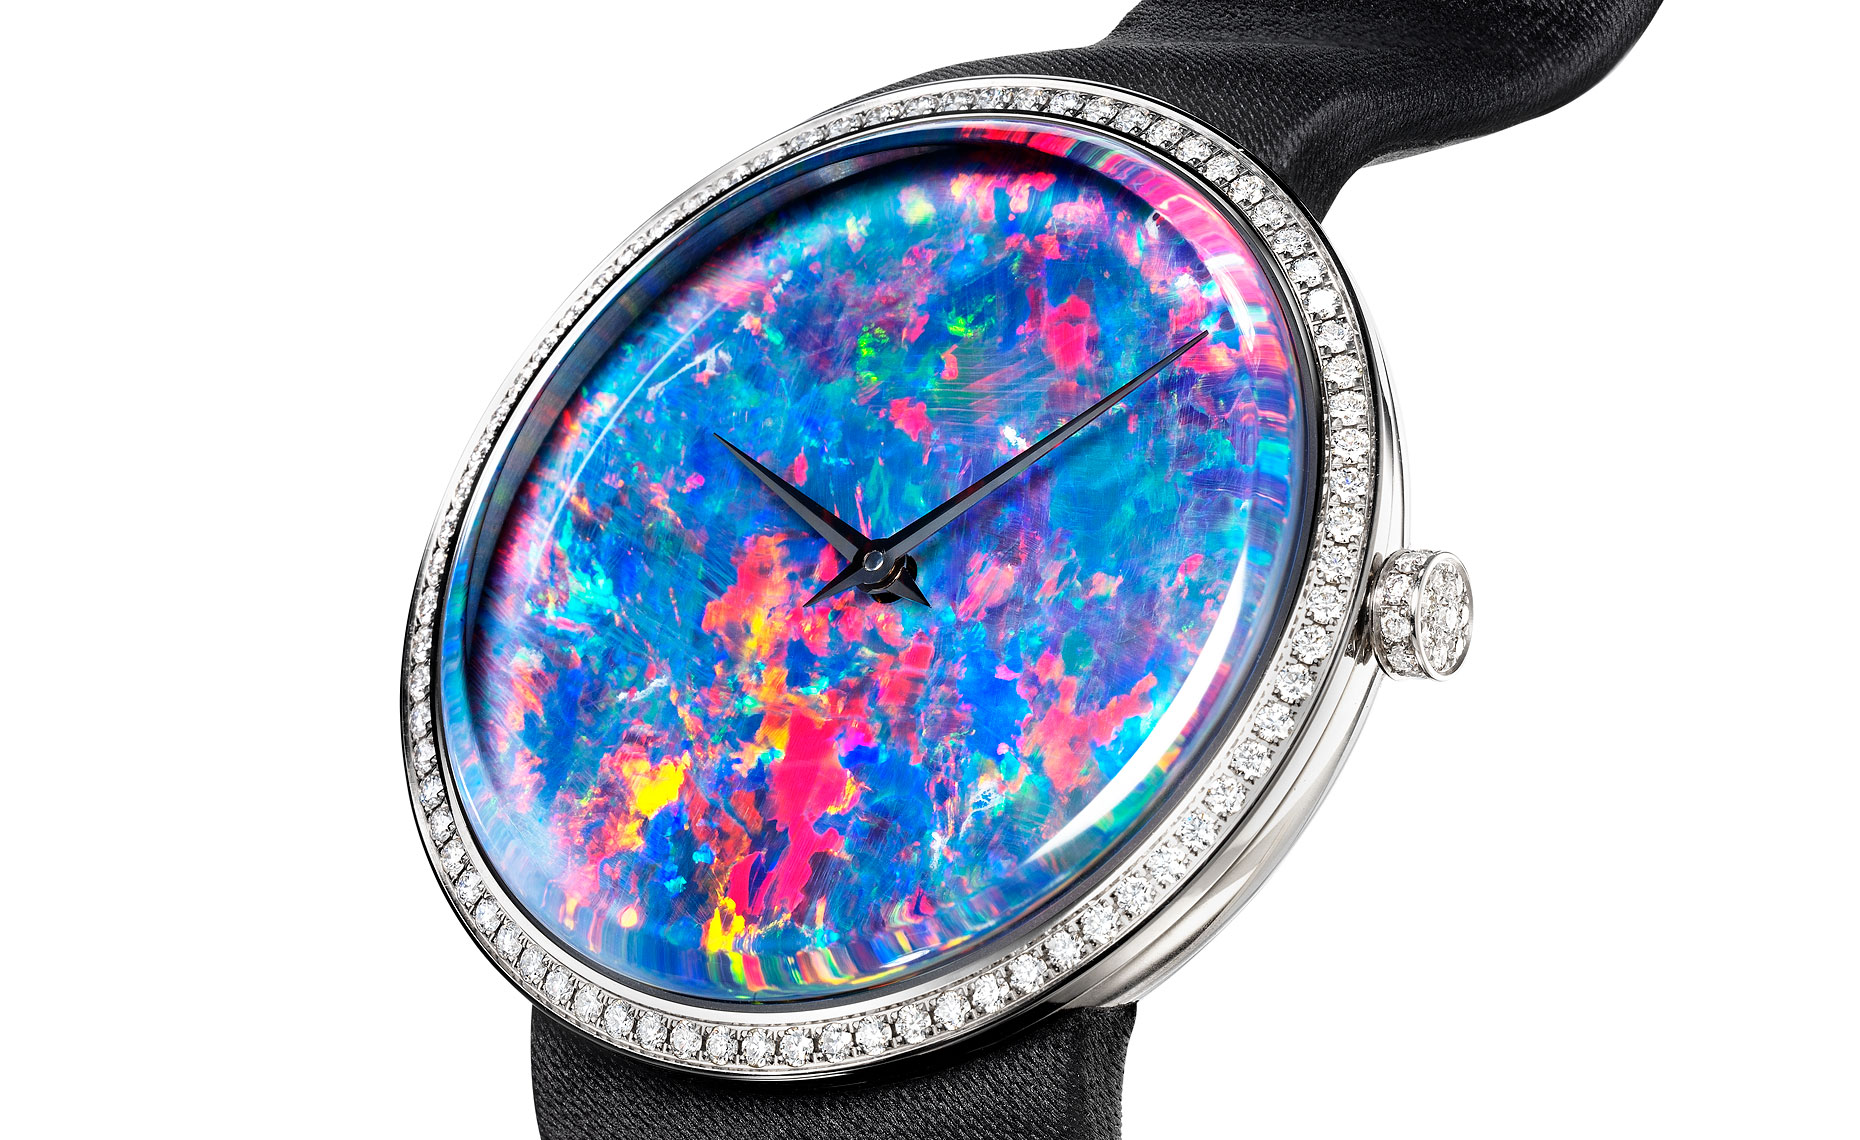 Chanel Opal Watch